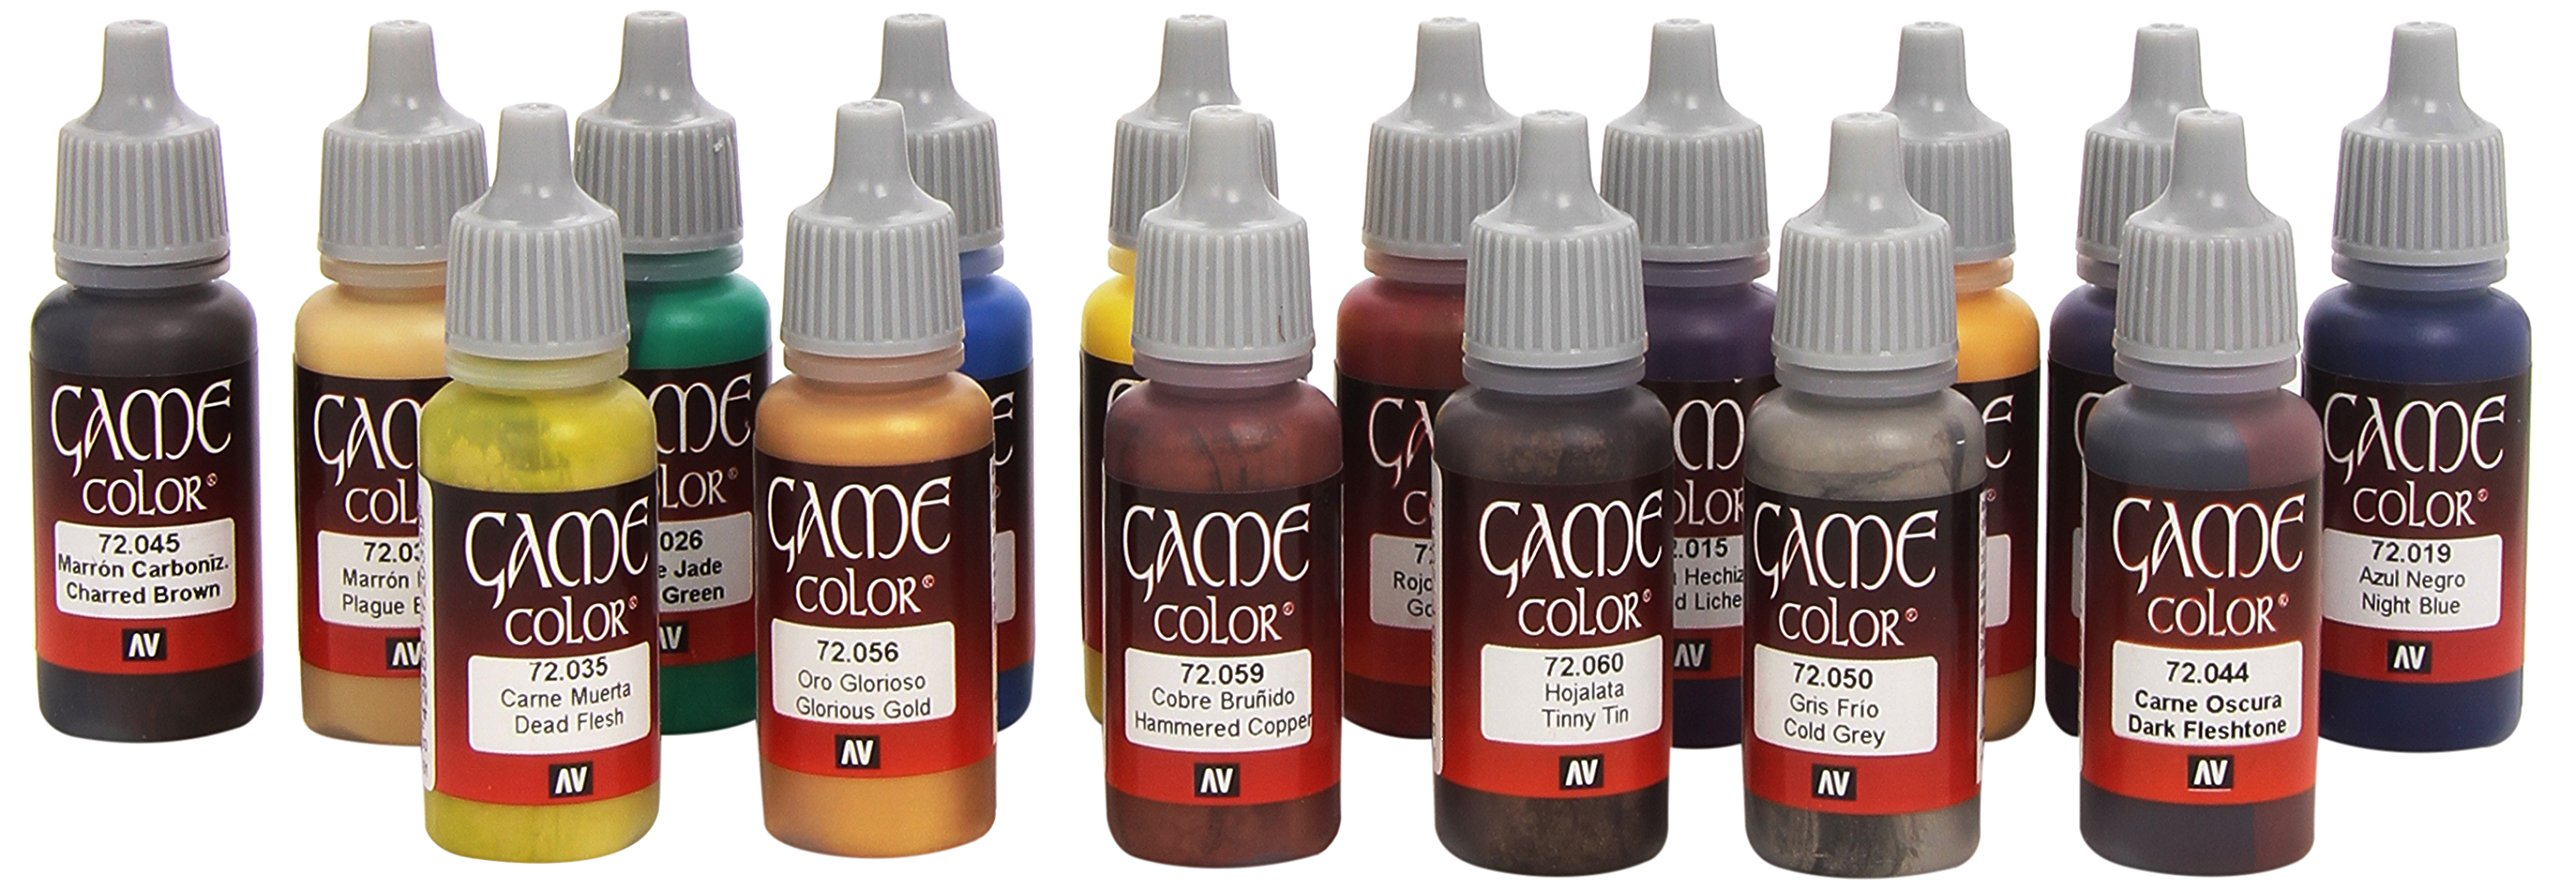 Av Vallejo Game Color Set -advanced Set (x16) by Vallejo Acrylic Paints (Image #2)